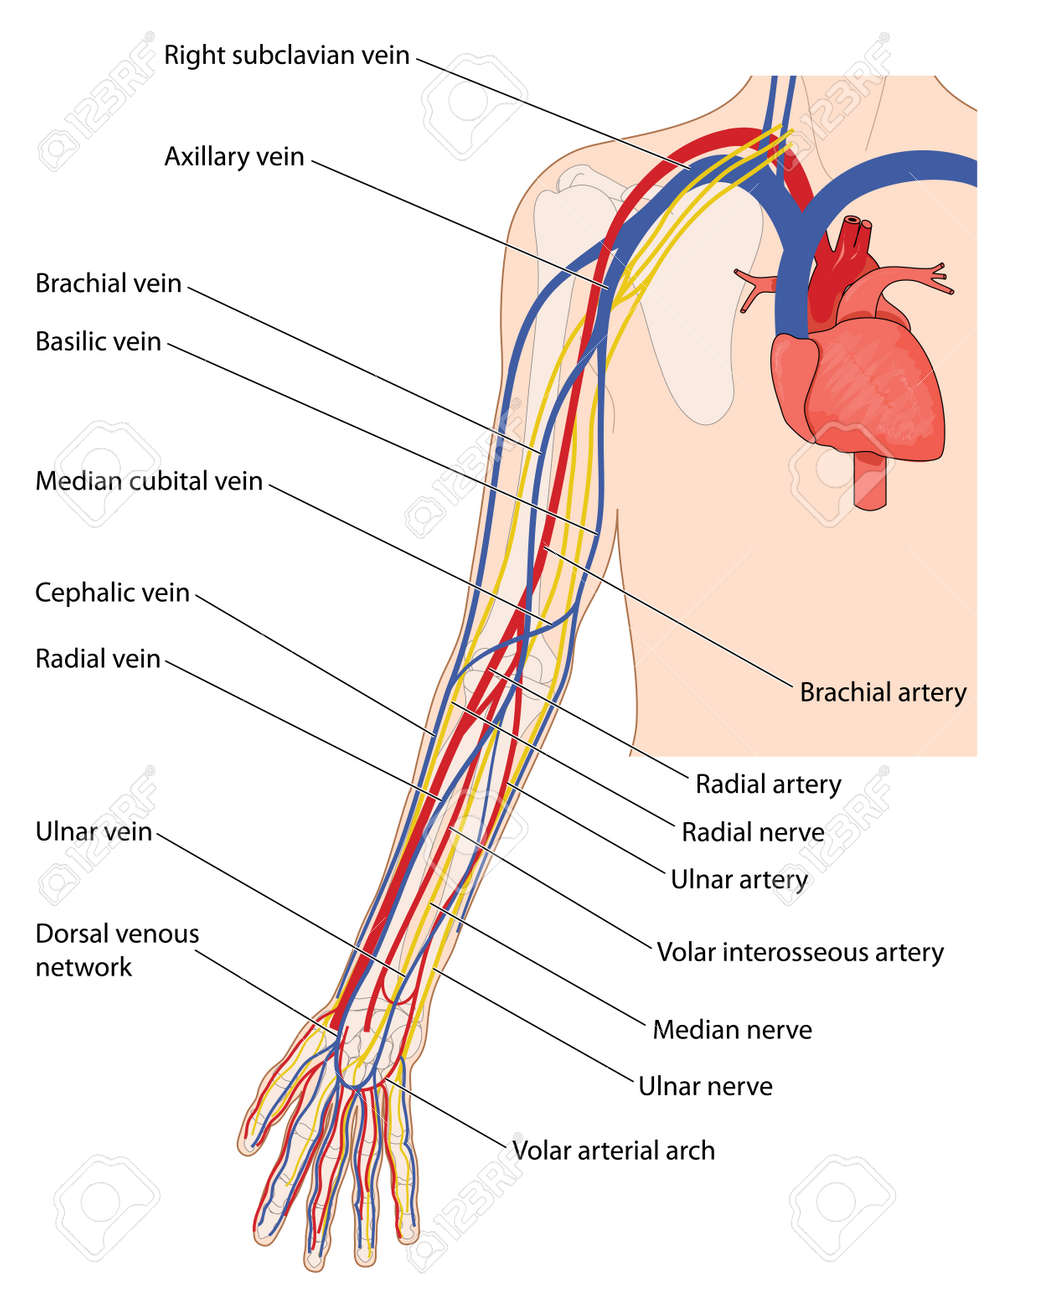 Arteries, Veins And Nerves Of The Arm, From The Heart Down To ...